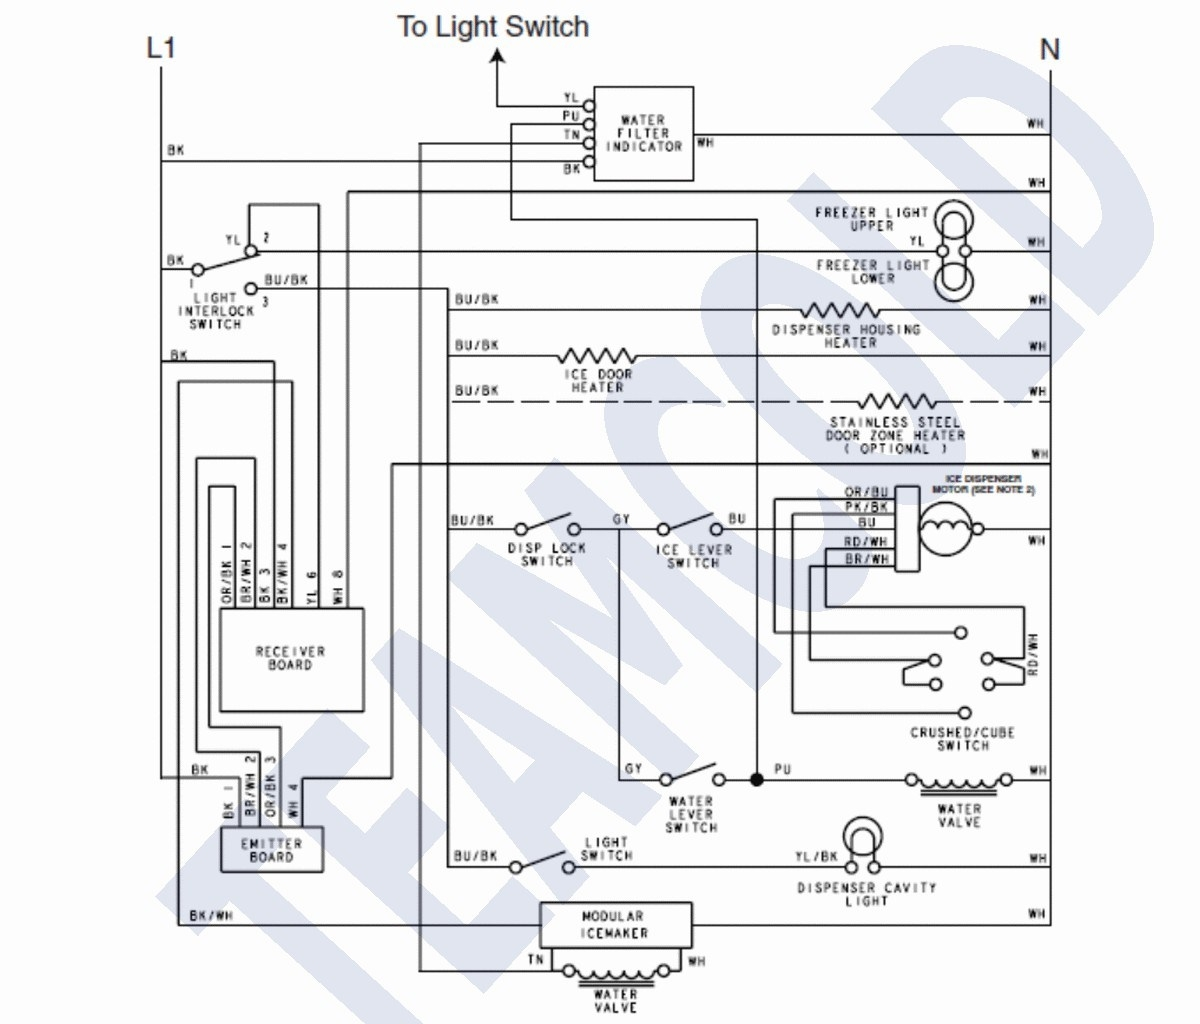 ice maker wiring schematic wiring diagram ice maker wire color code ice maker wiring diagram wiring diagrams